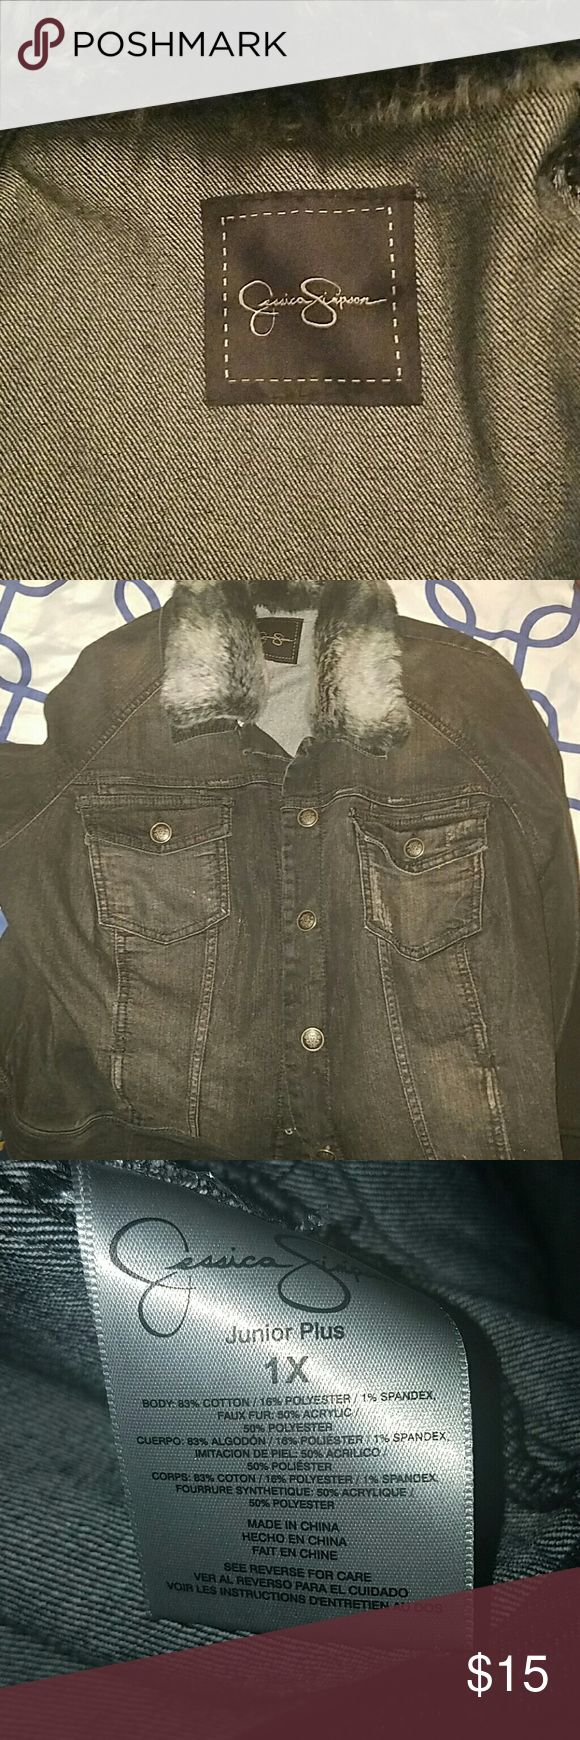 Jessica Simpson jacket Black Jean jacket with fur around collar Jessica Simpson Jackets & Coats Jean Jackets